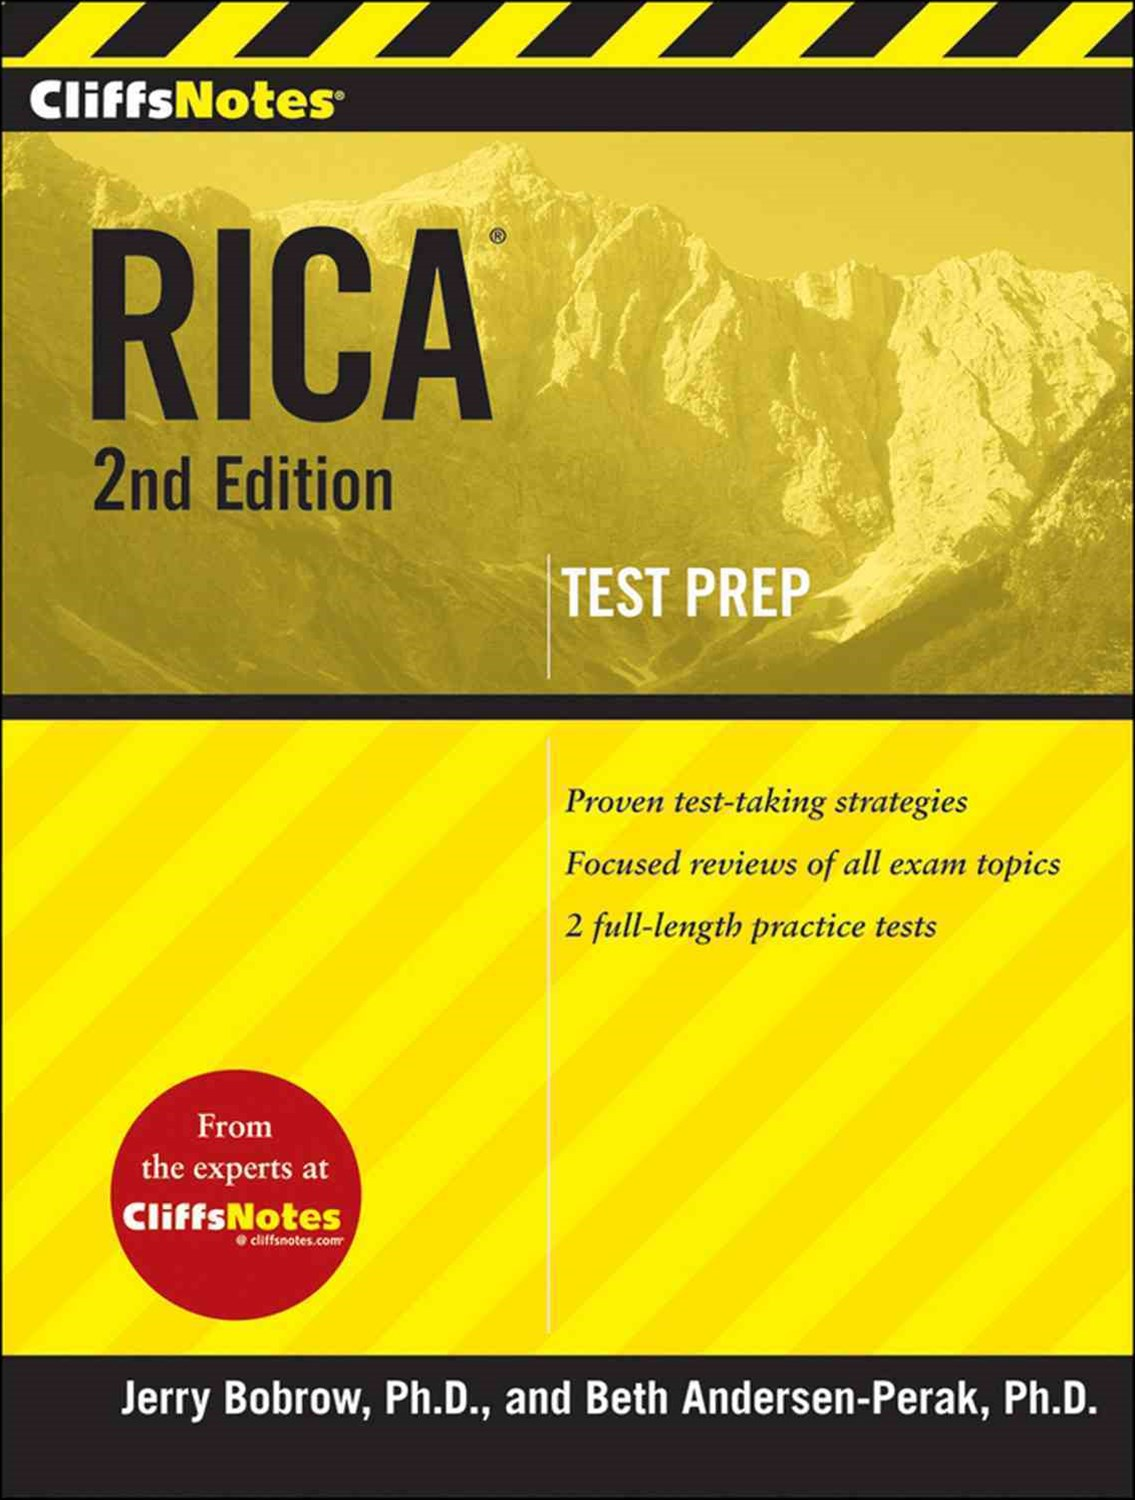 CliffsNotes RICA:  2nd Edition